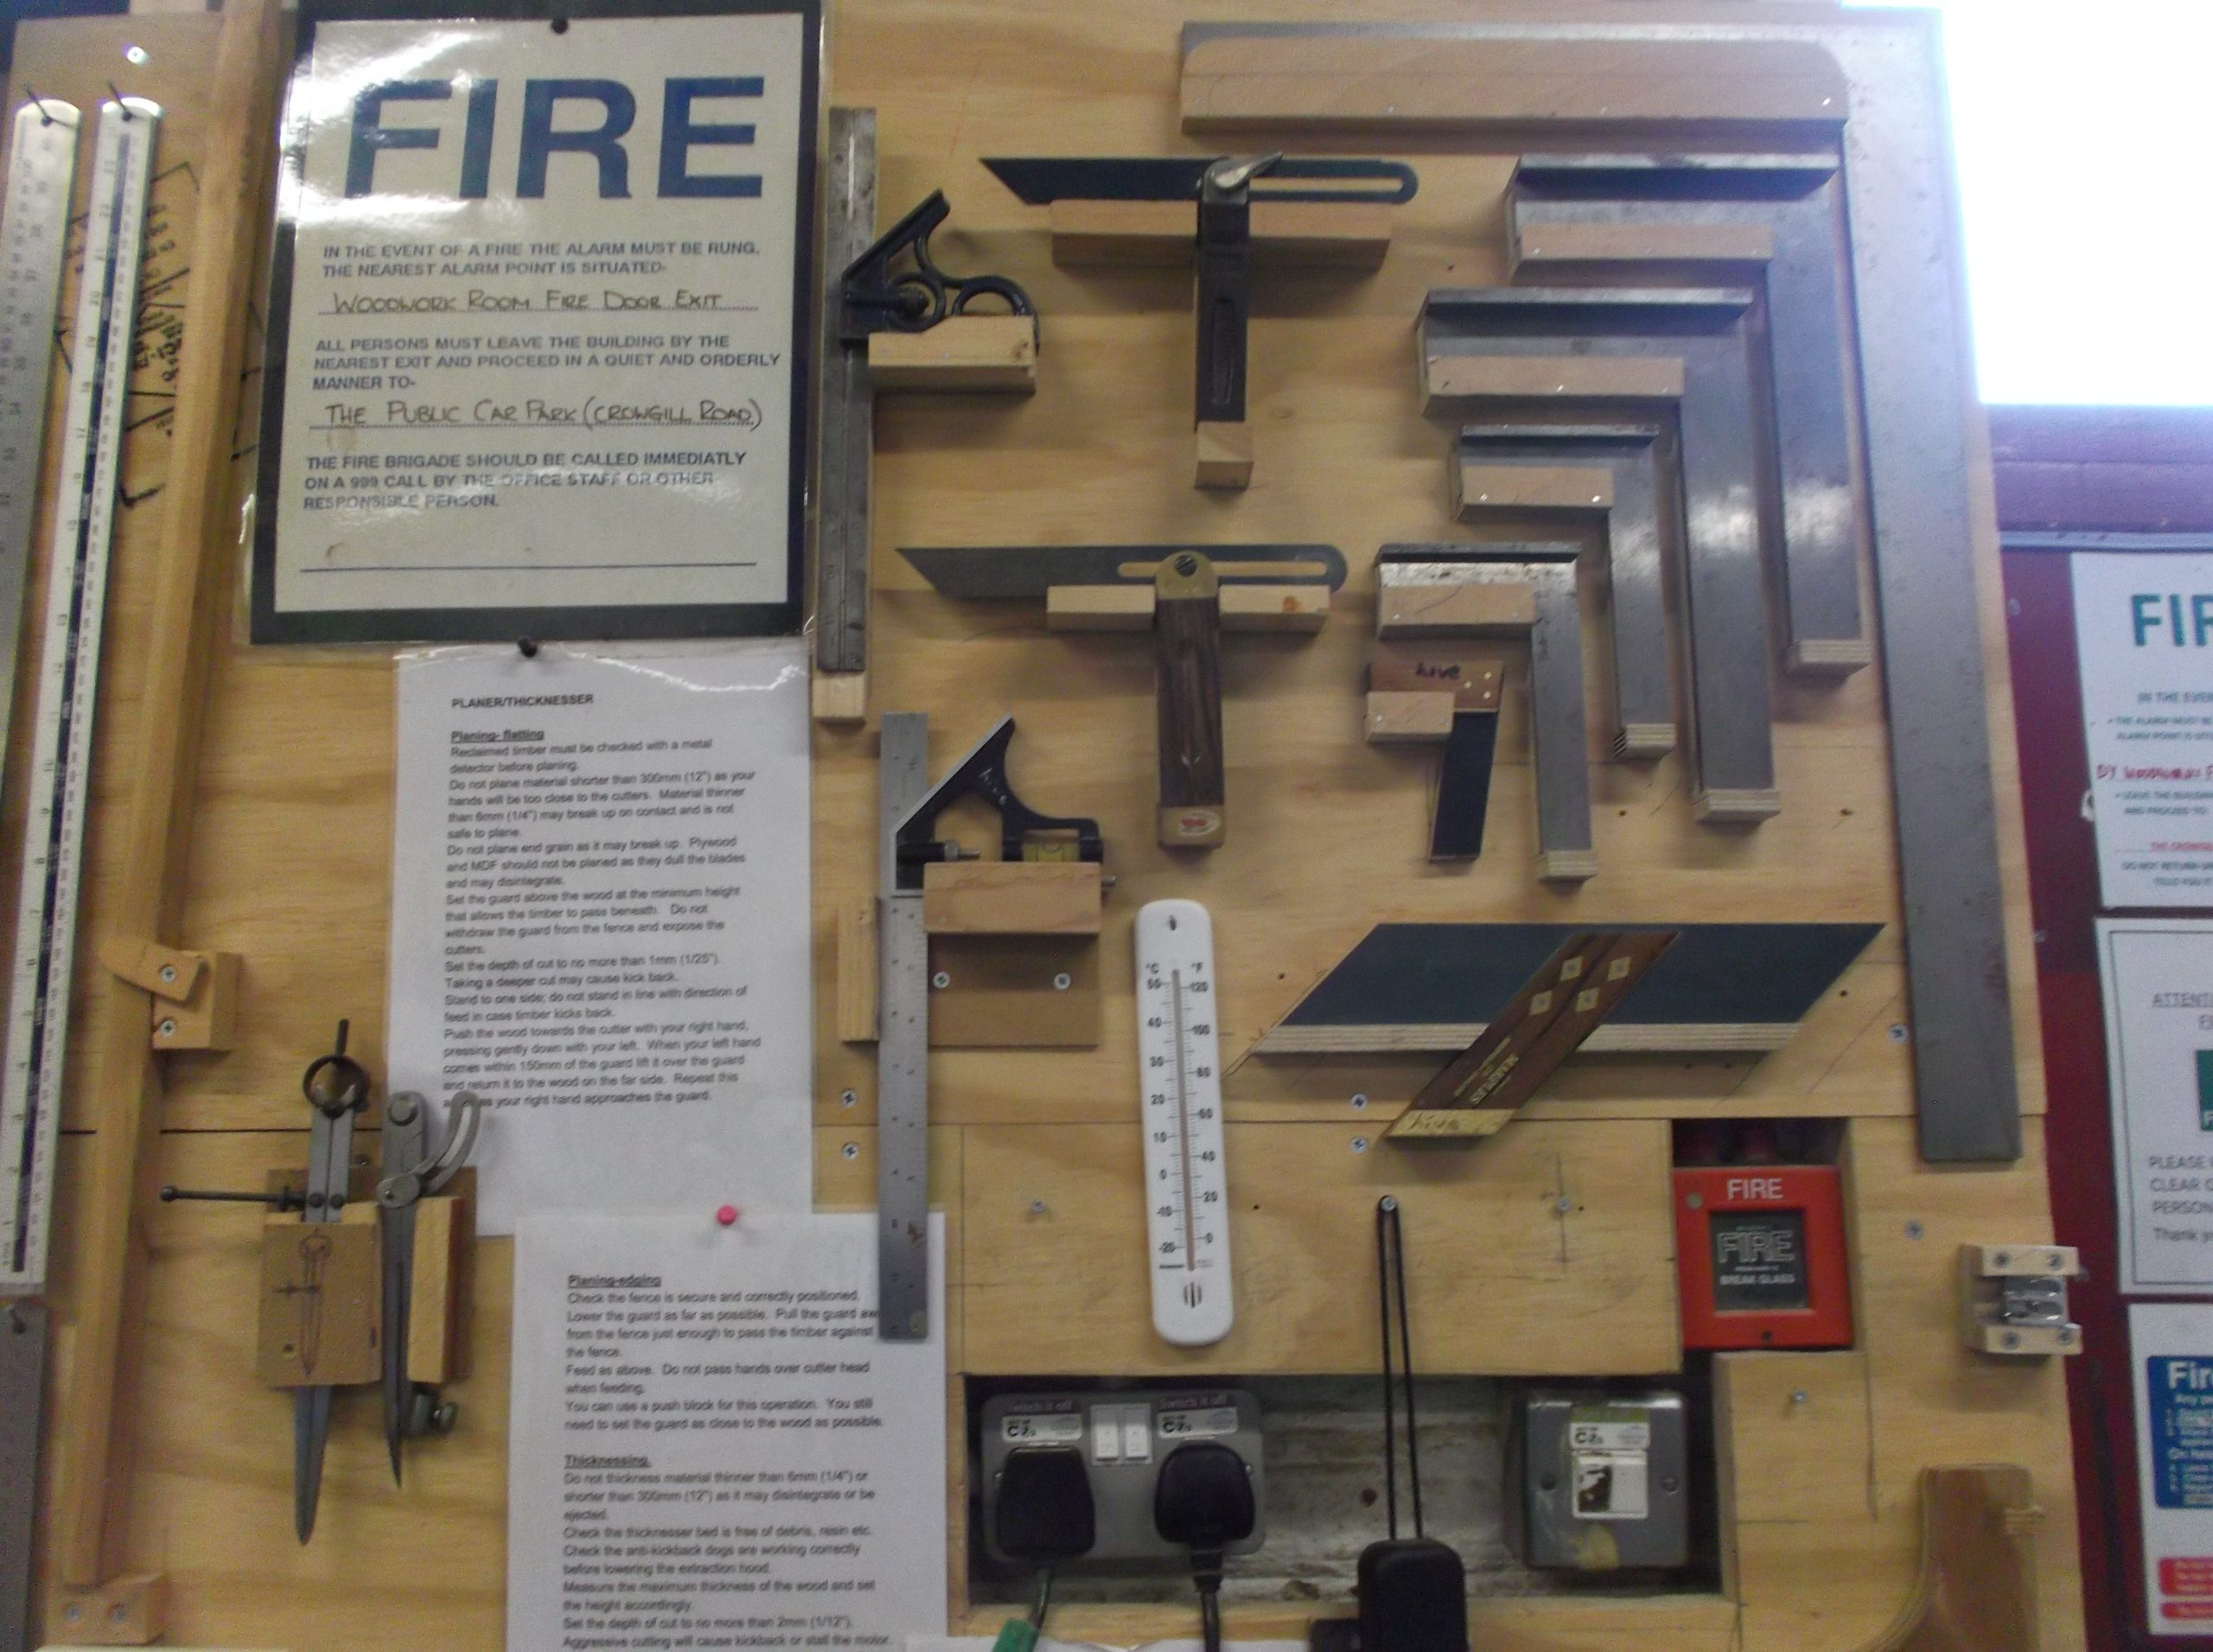 Woodwork tools and safety notices